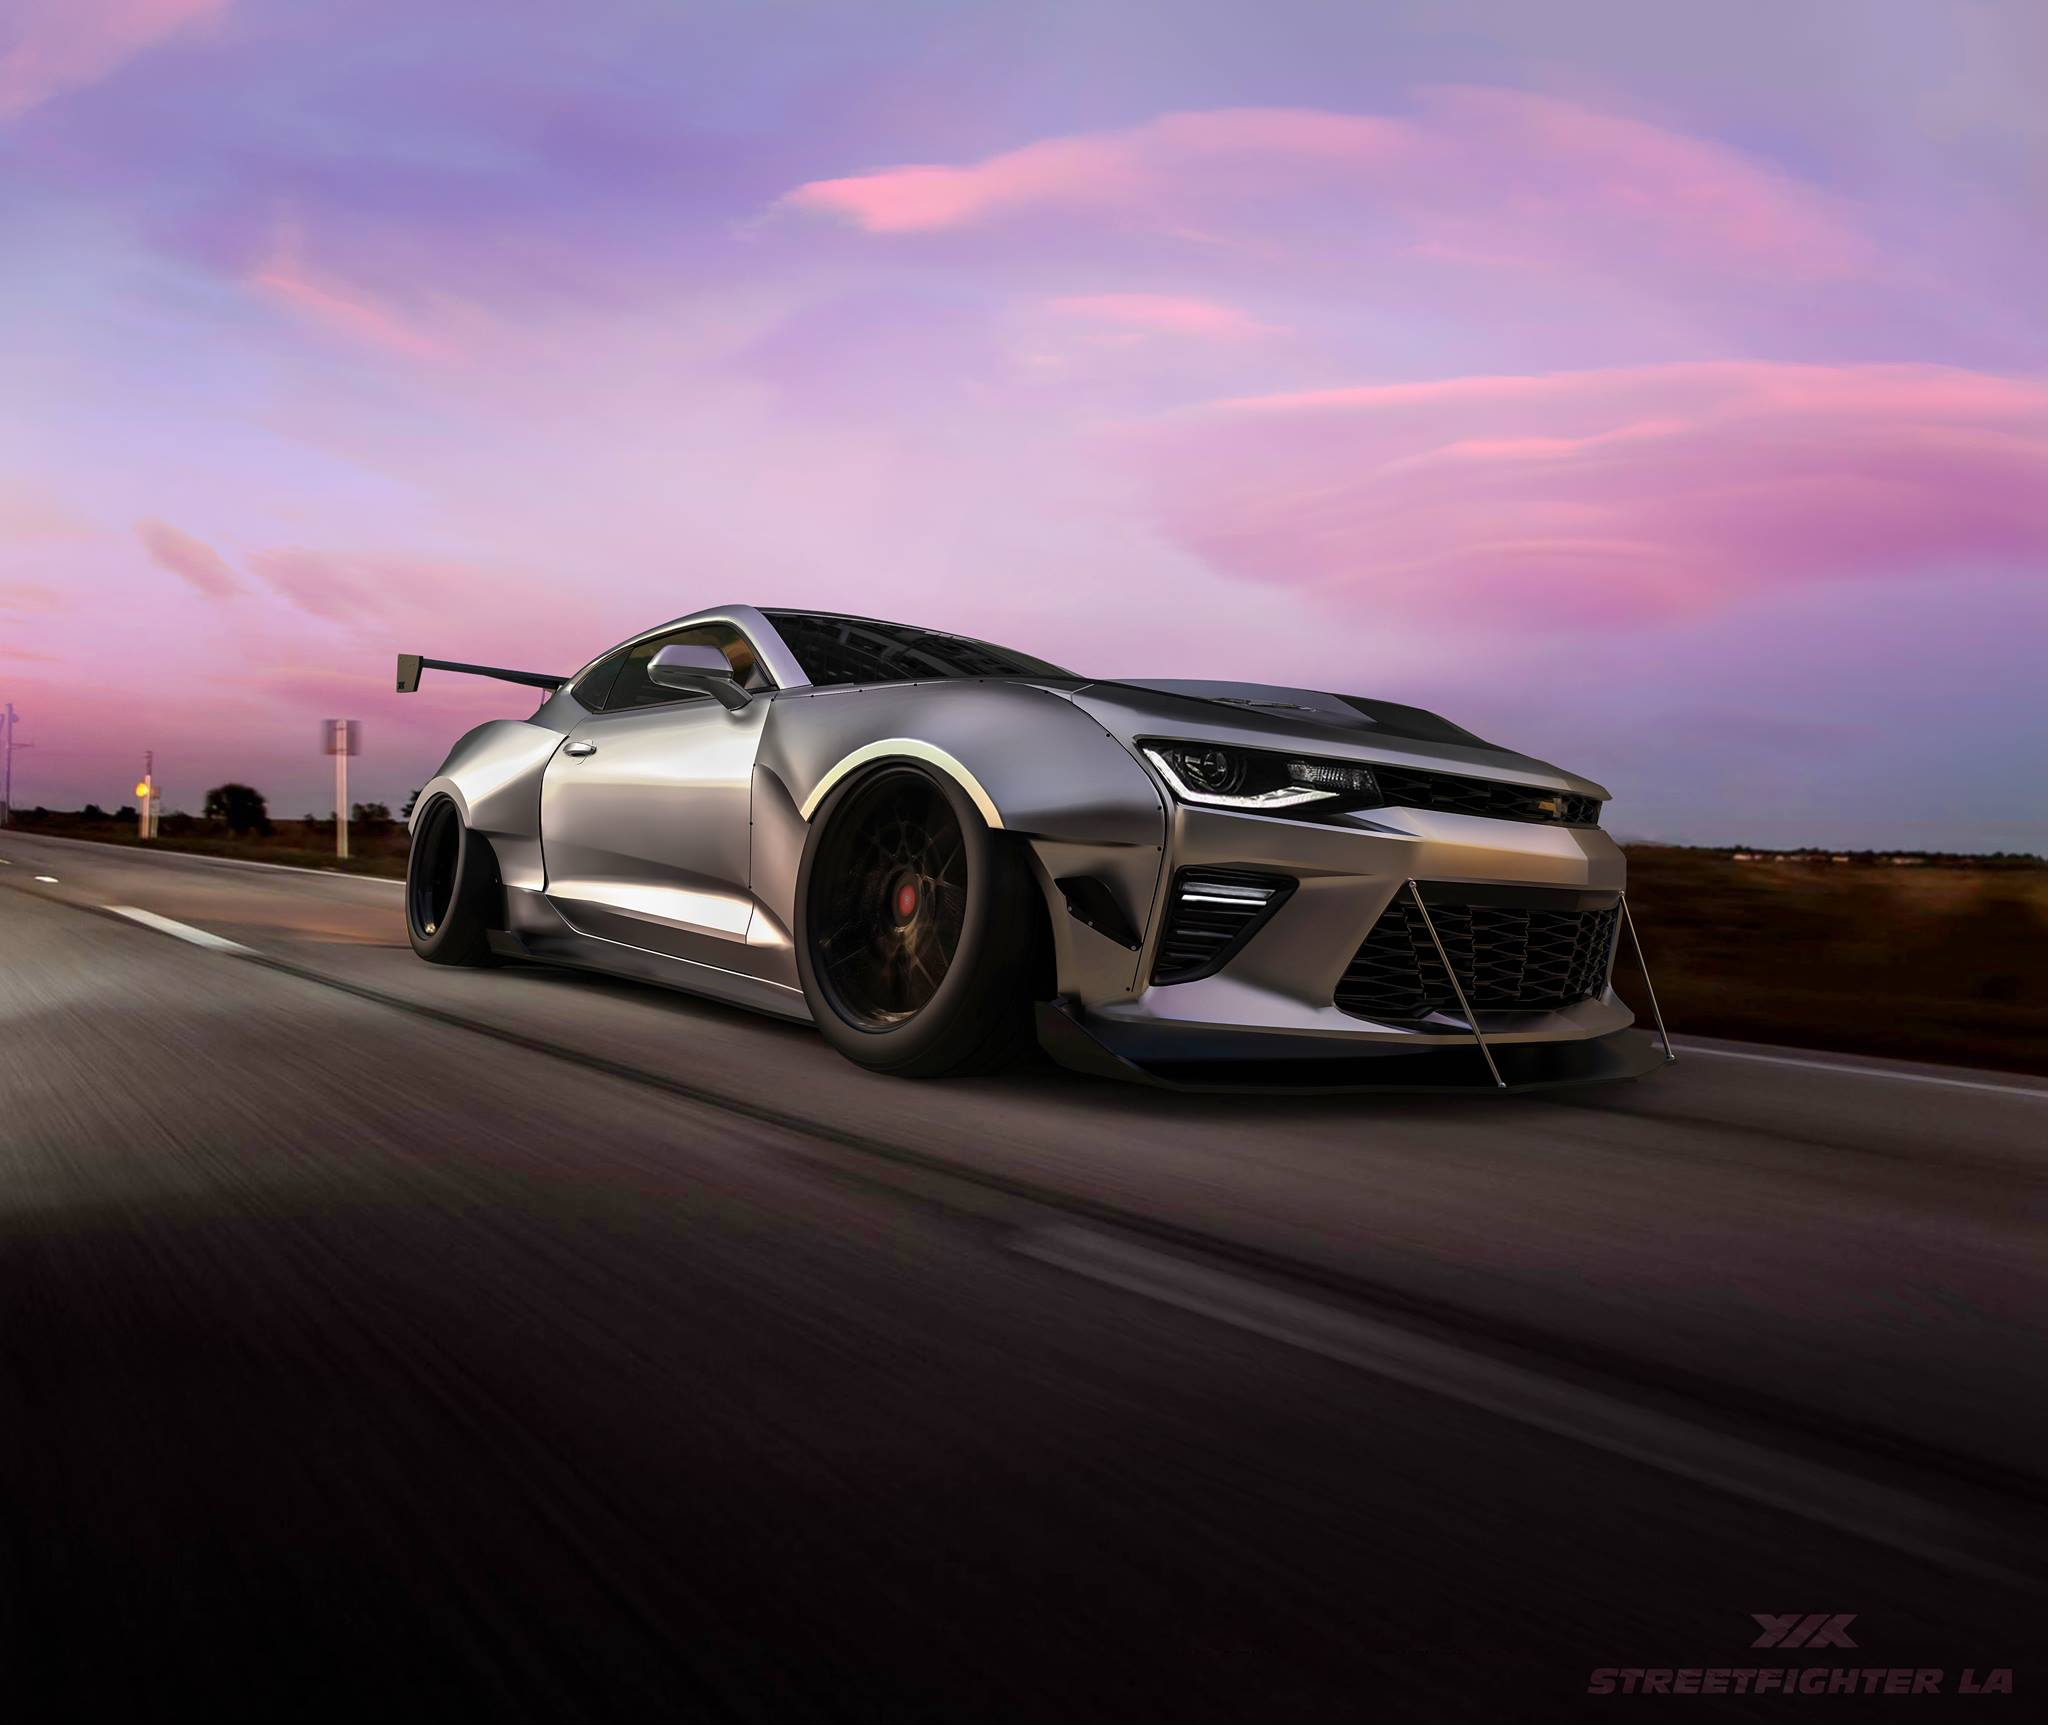 The Sixth Generation Camaro Is An Impressive Package Out Of The Box But In The Hands Of The Right Tuning House Gms Latest Pony Car Has The Potential To